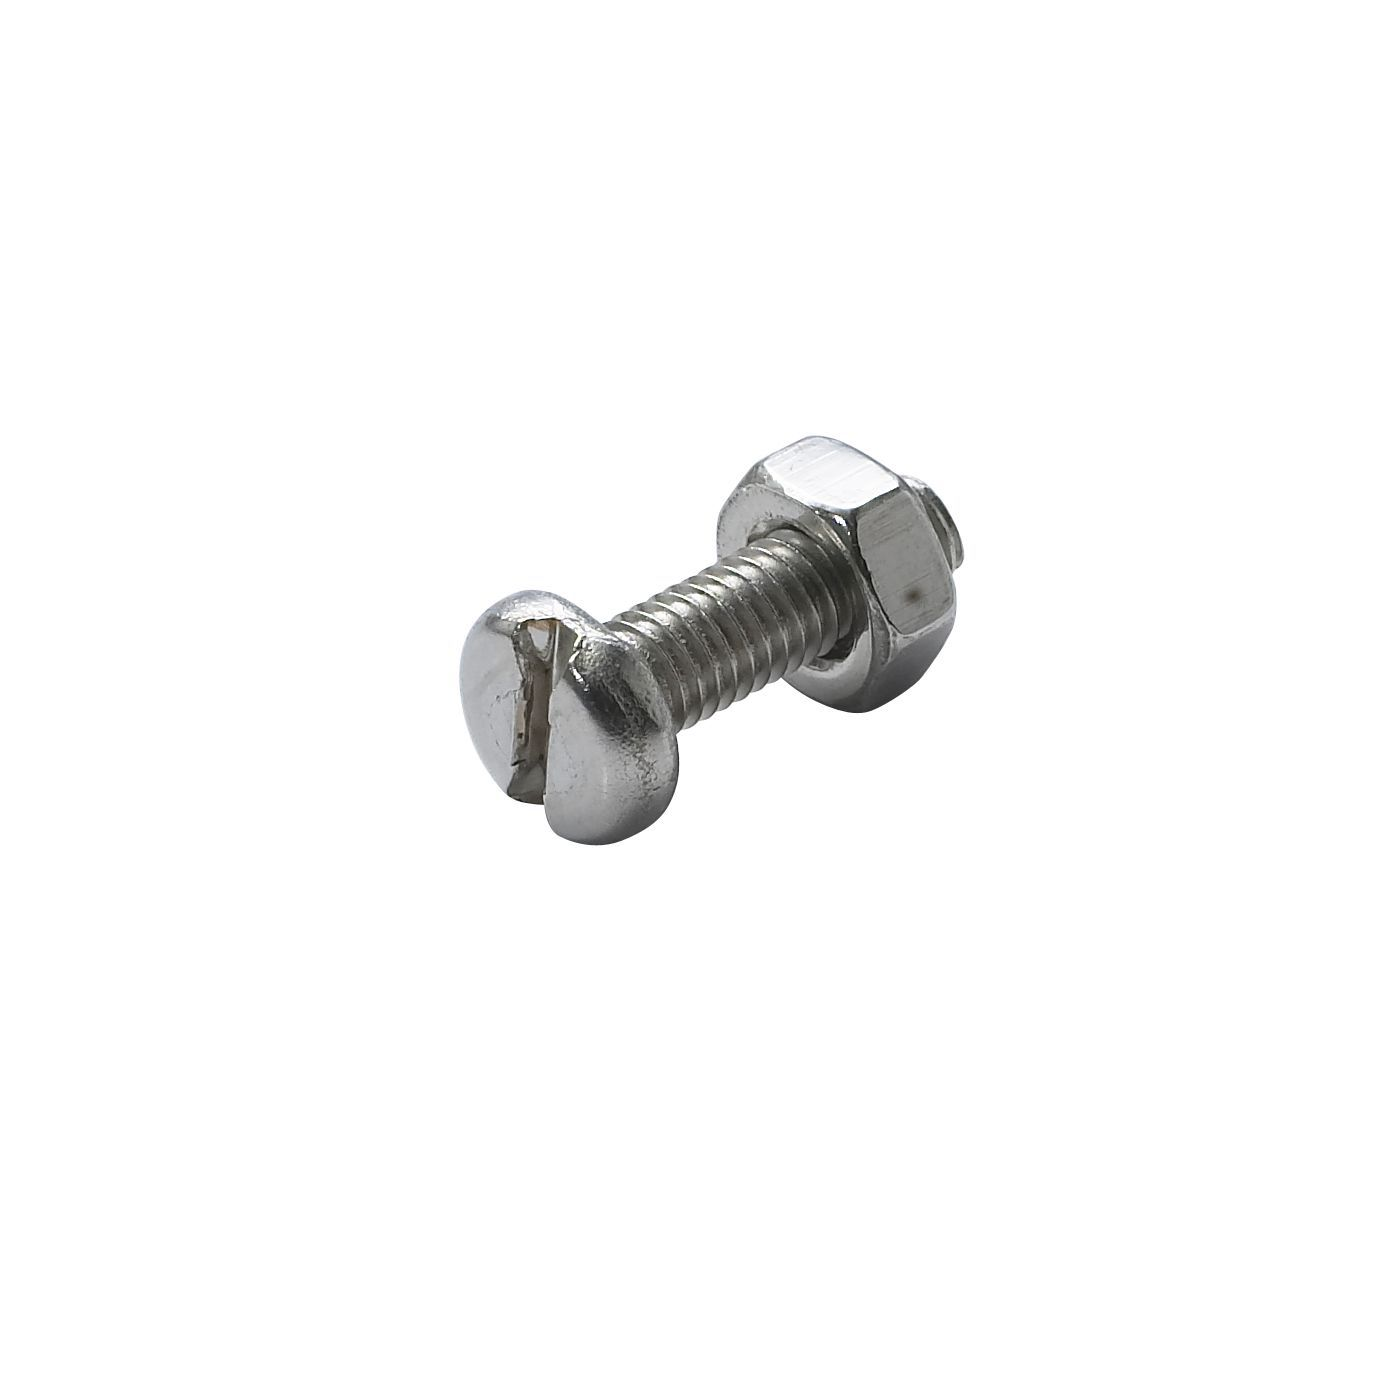 M3 Machine Screw (l) 10mm (dia) 3mm, Pack Of 10